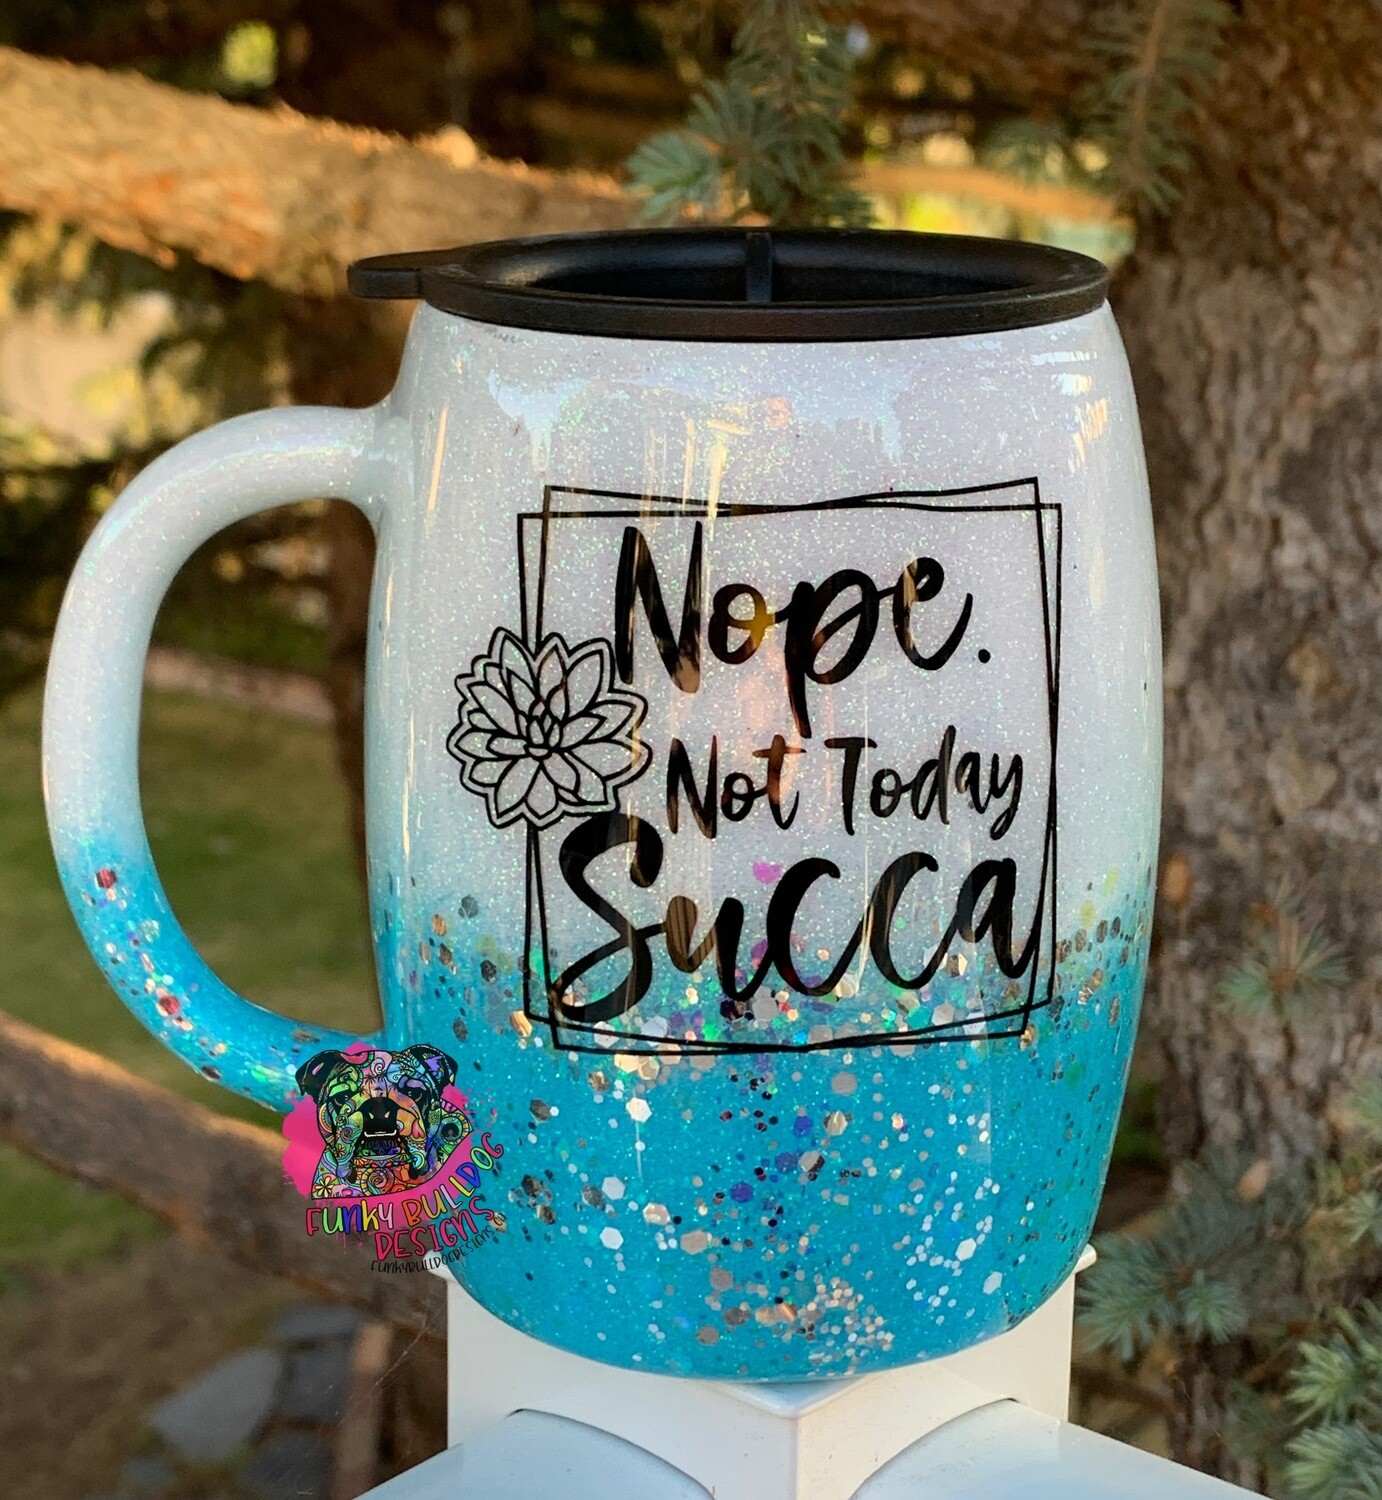 14oz stainless steel blue glitter tumbler - Nope not today Succa